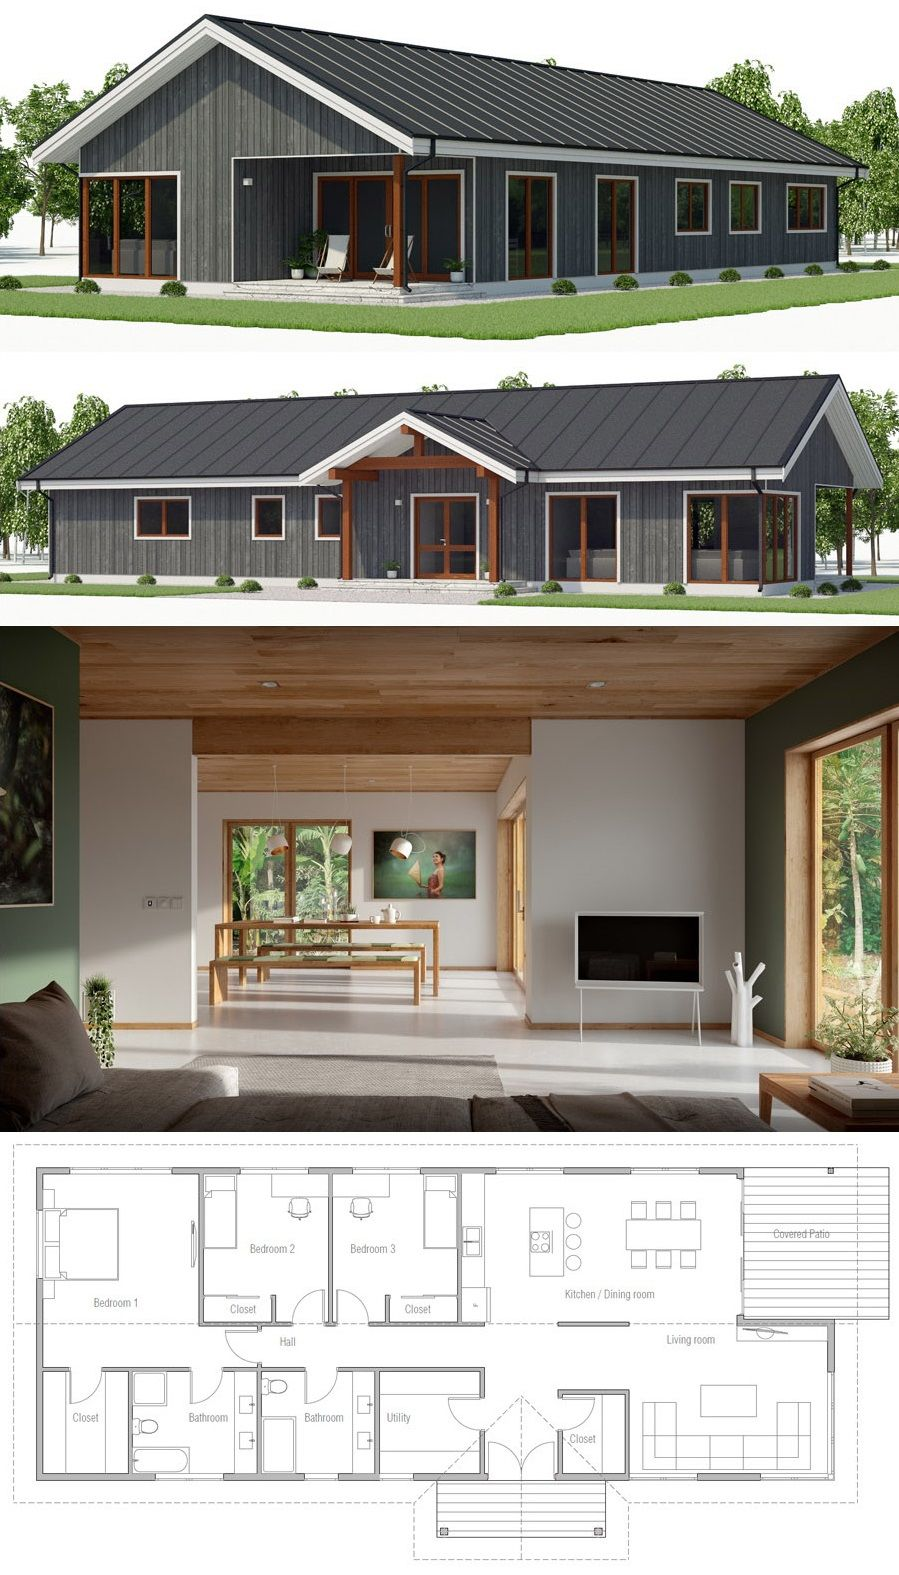 House Plan Ch530 Small House Plan Modern House Plans Small House Plans